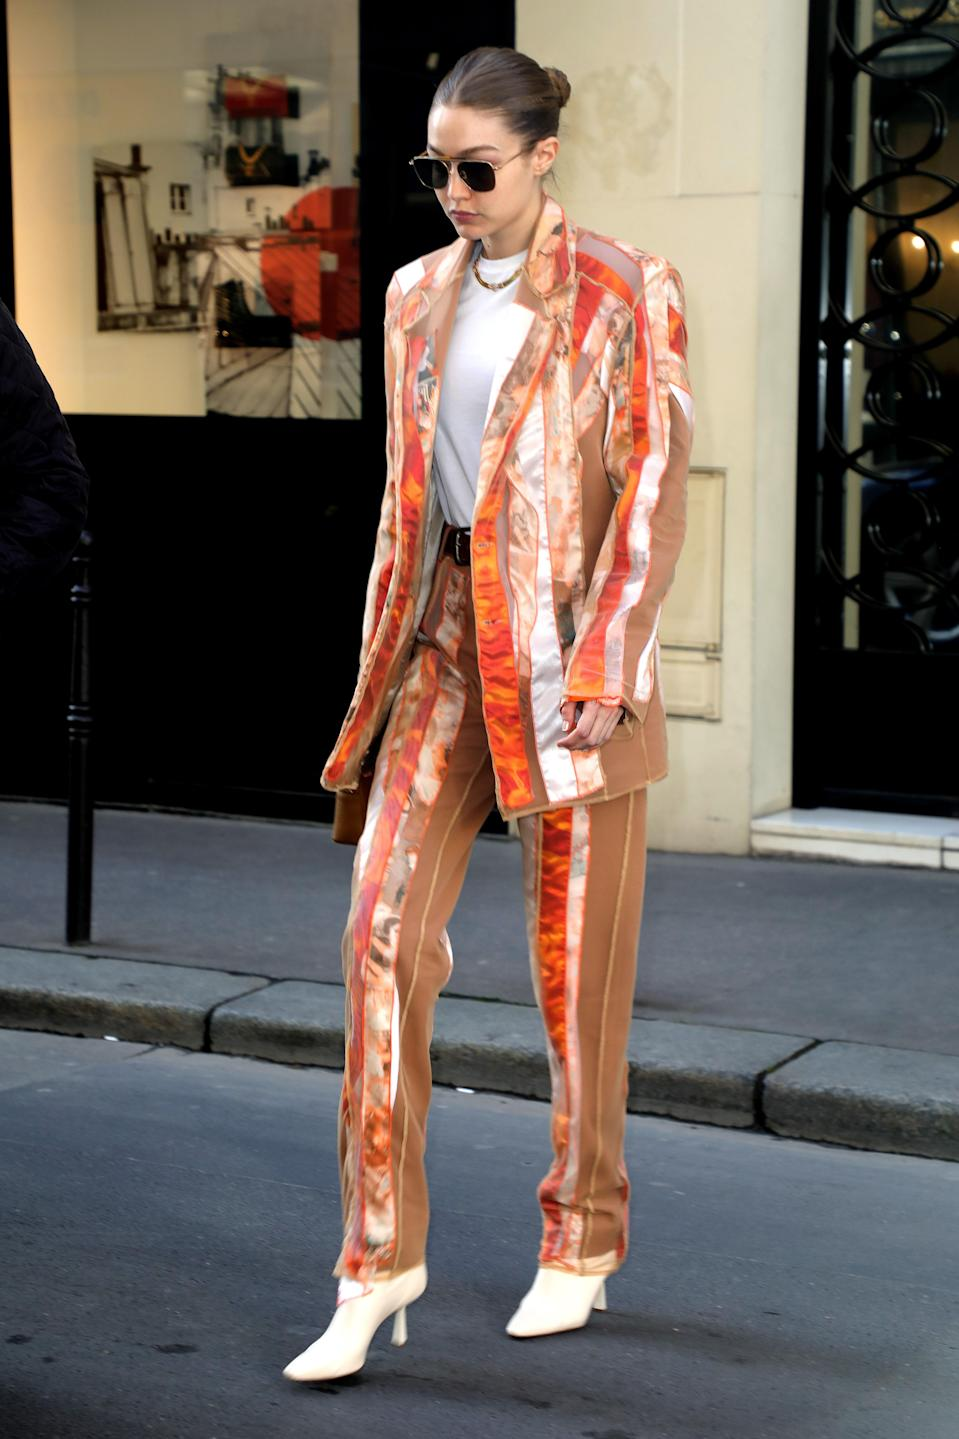 Suit but make it fun. Gigi visited the Chanel headquarters in Paris clad in this showstopping suit.